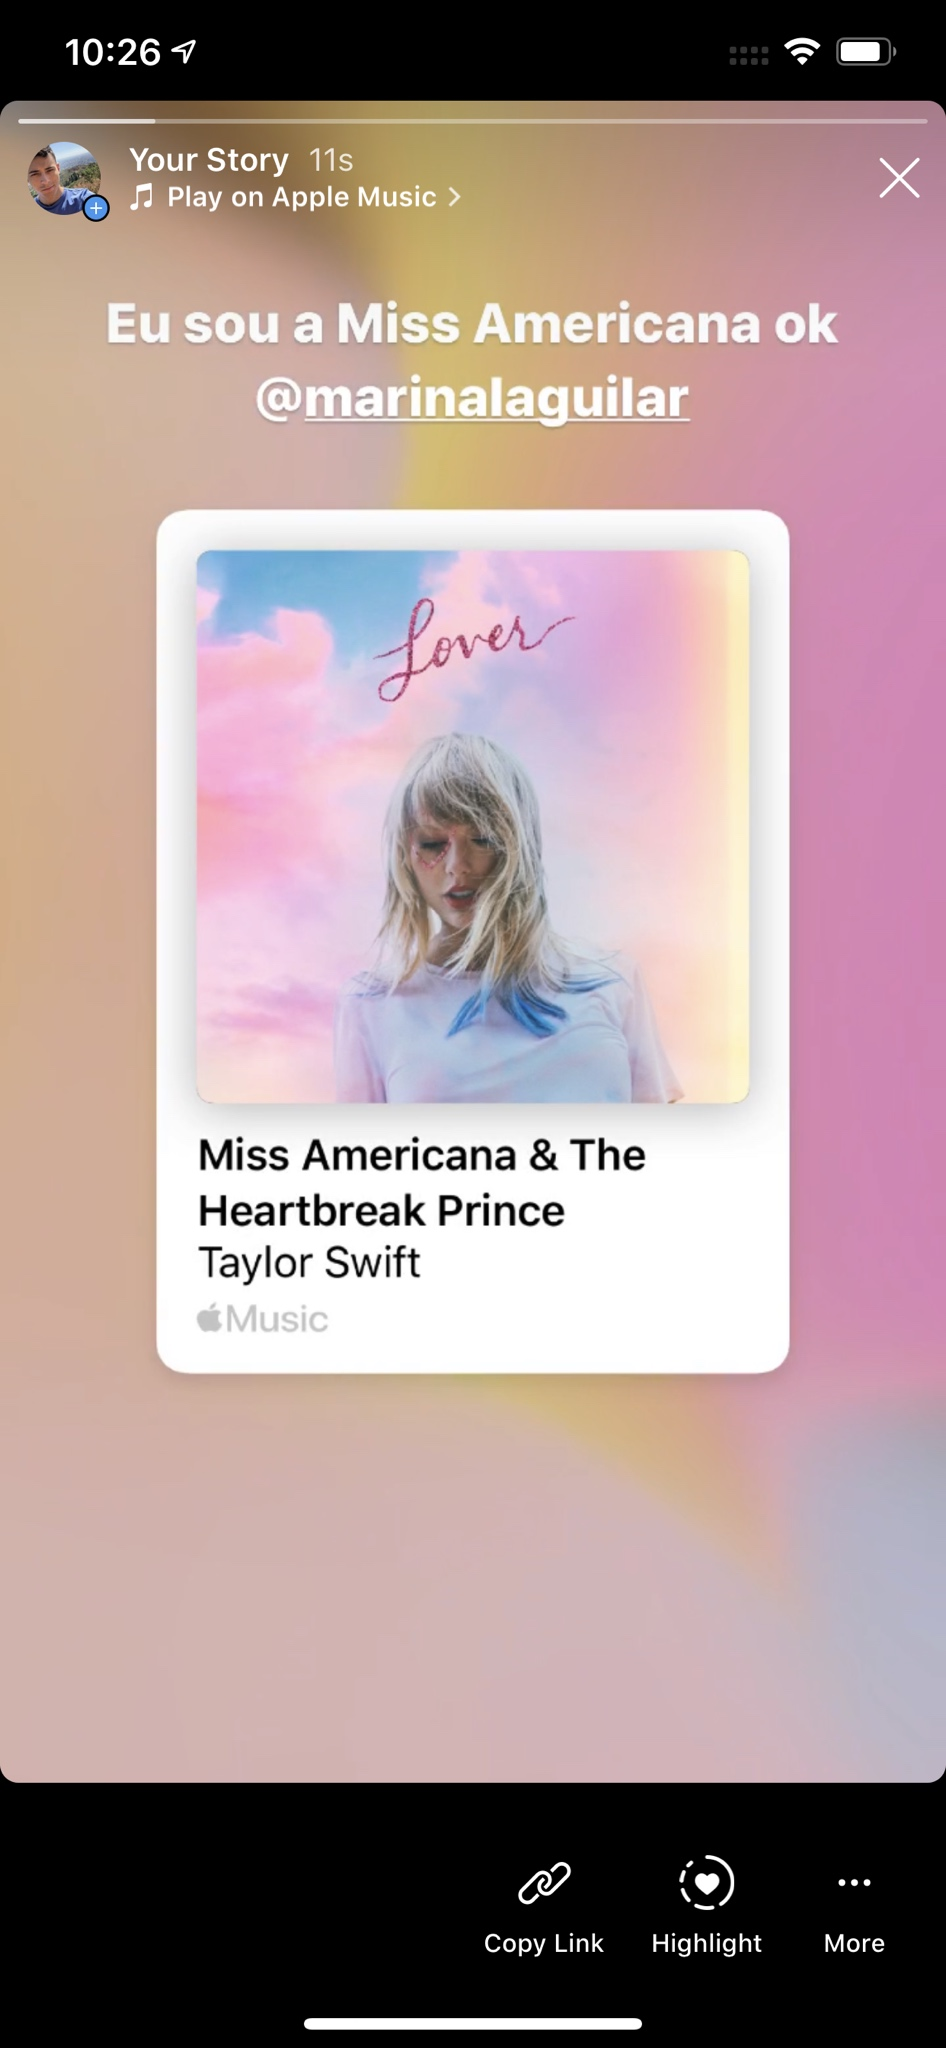 Share Apple Music songs Instagram Stories Facebook Stories